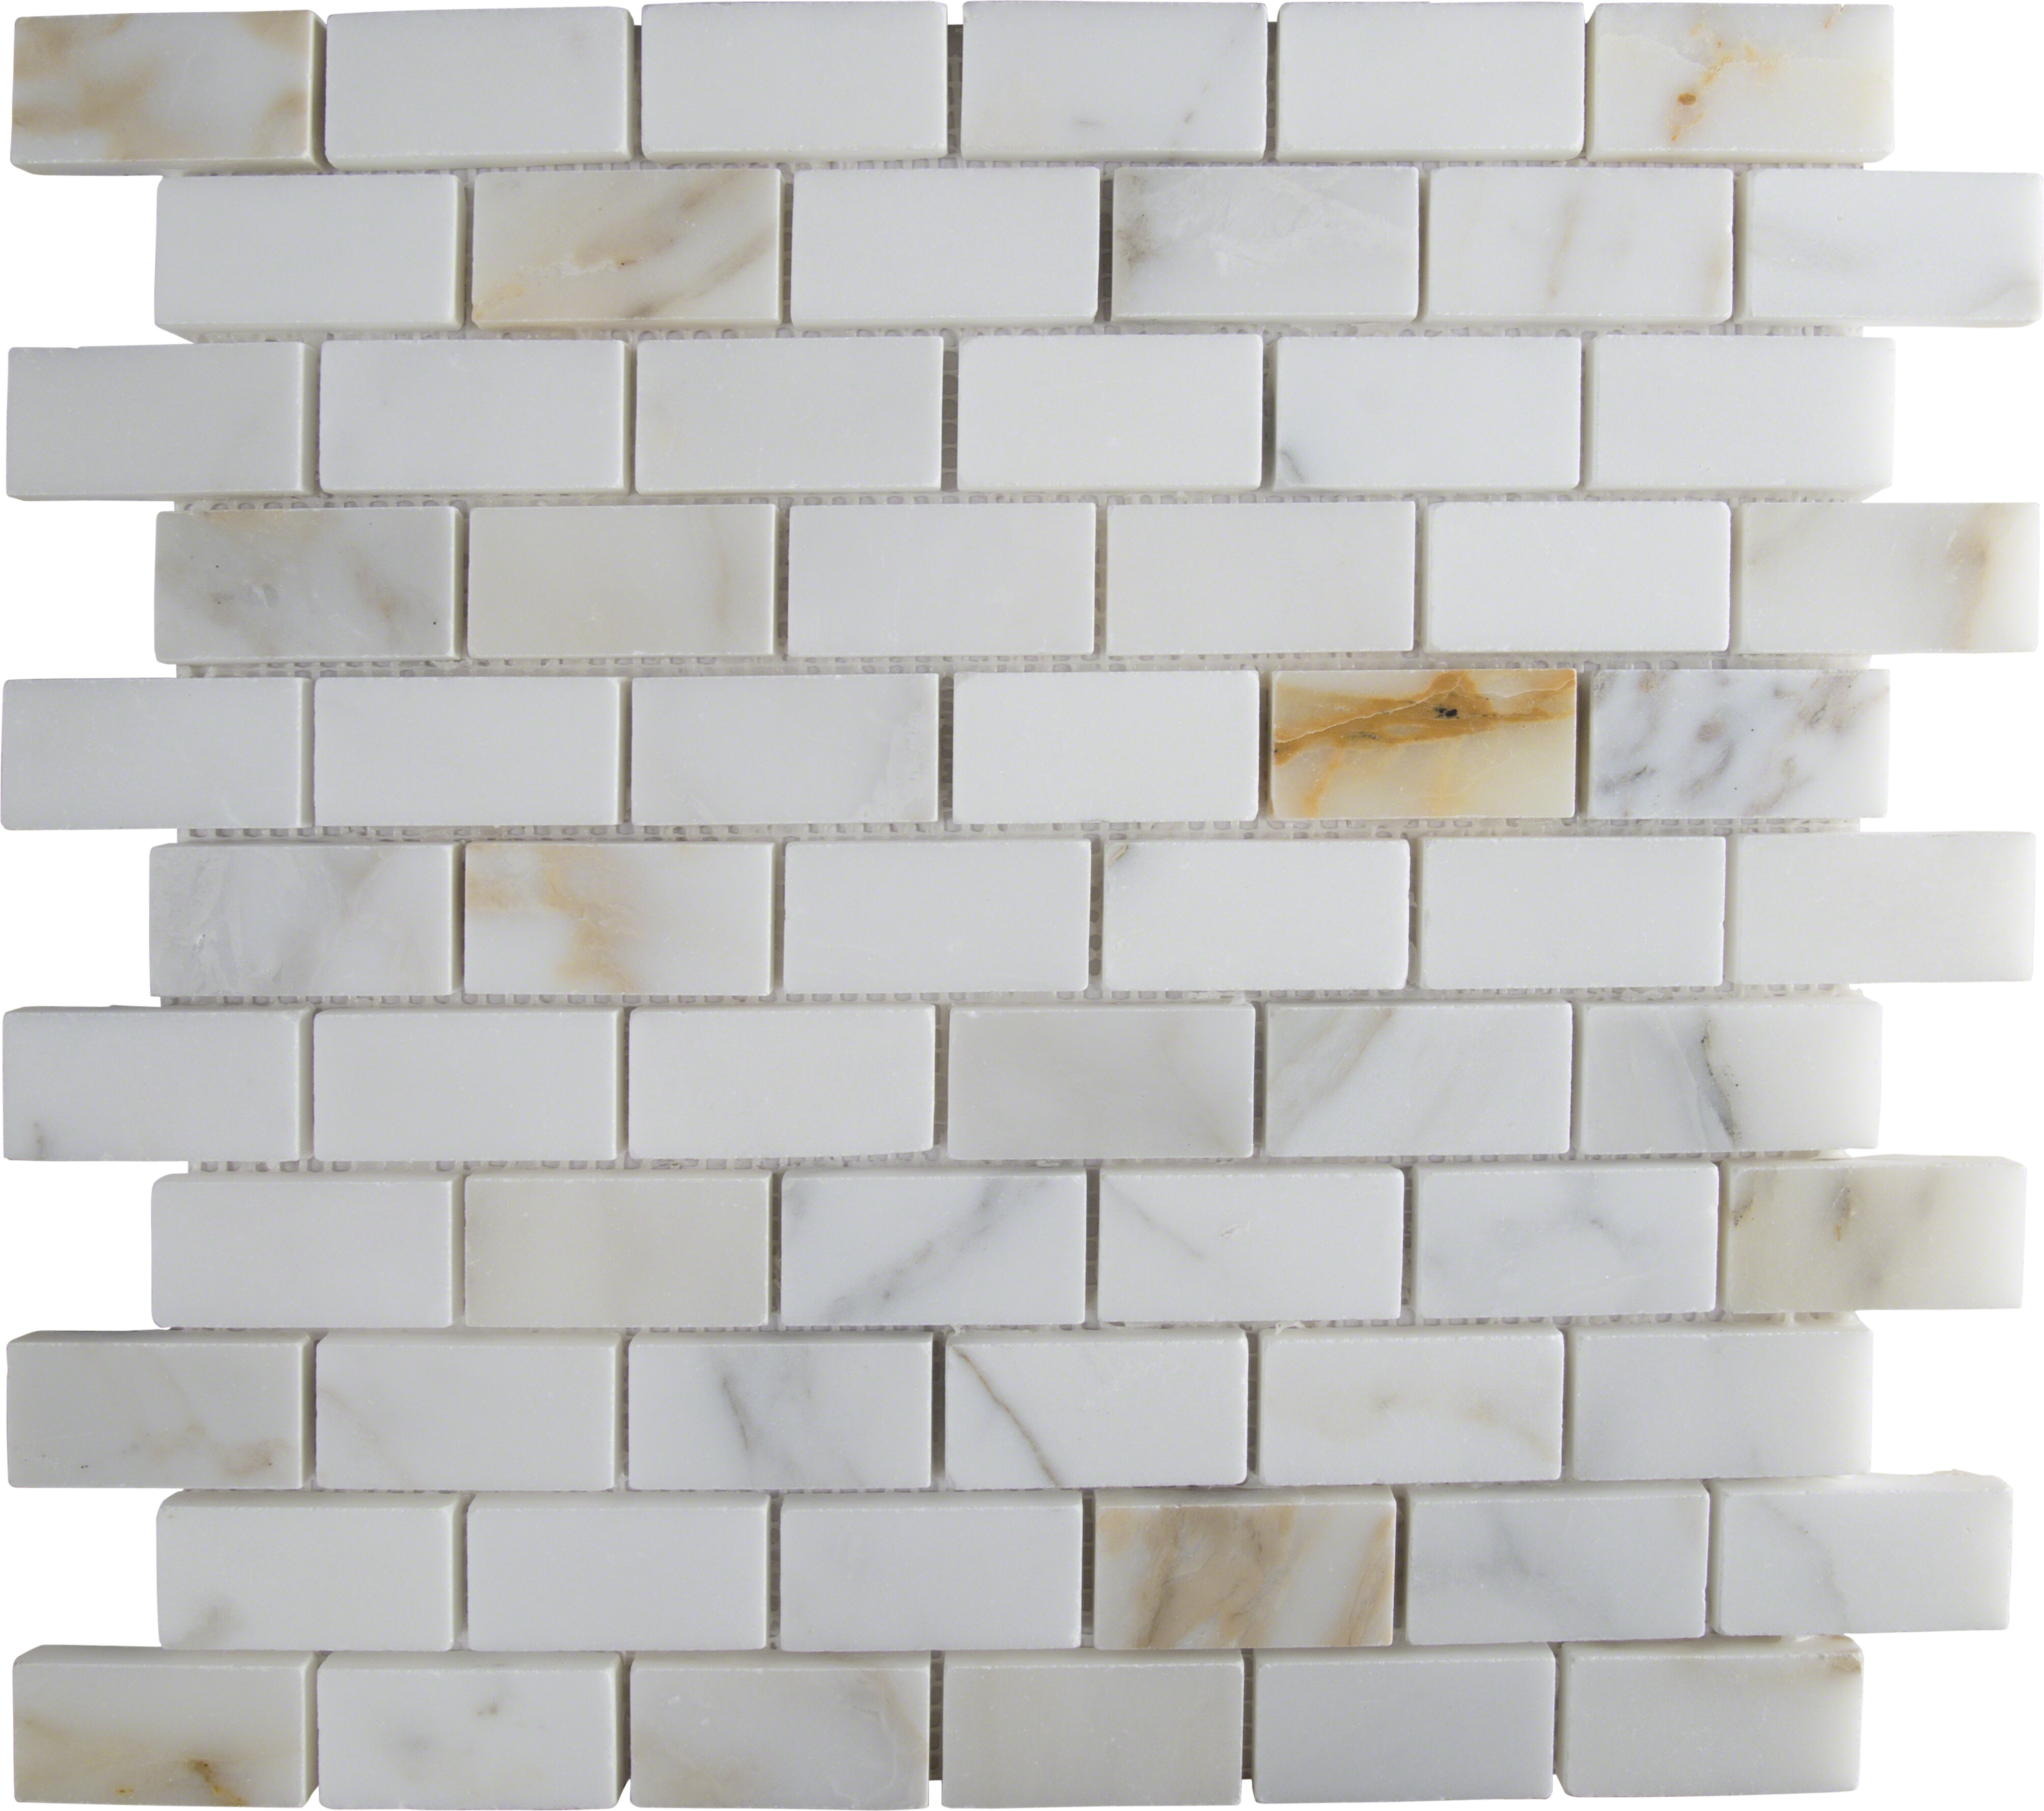 Msi calacatta gold mounted 1 x 2 marble subway tile in white msi calacatta gold mounted 1 x 2 marble subway tile in white reviews wayfair dailygadgetfo Gallery